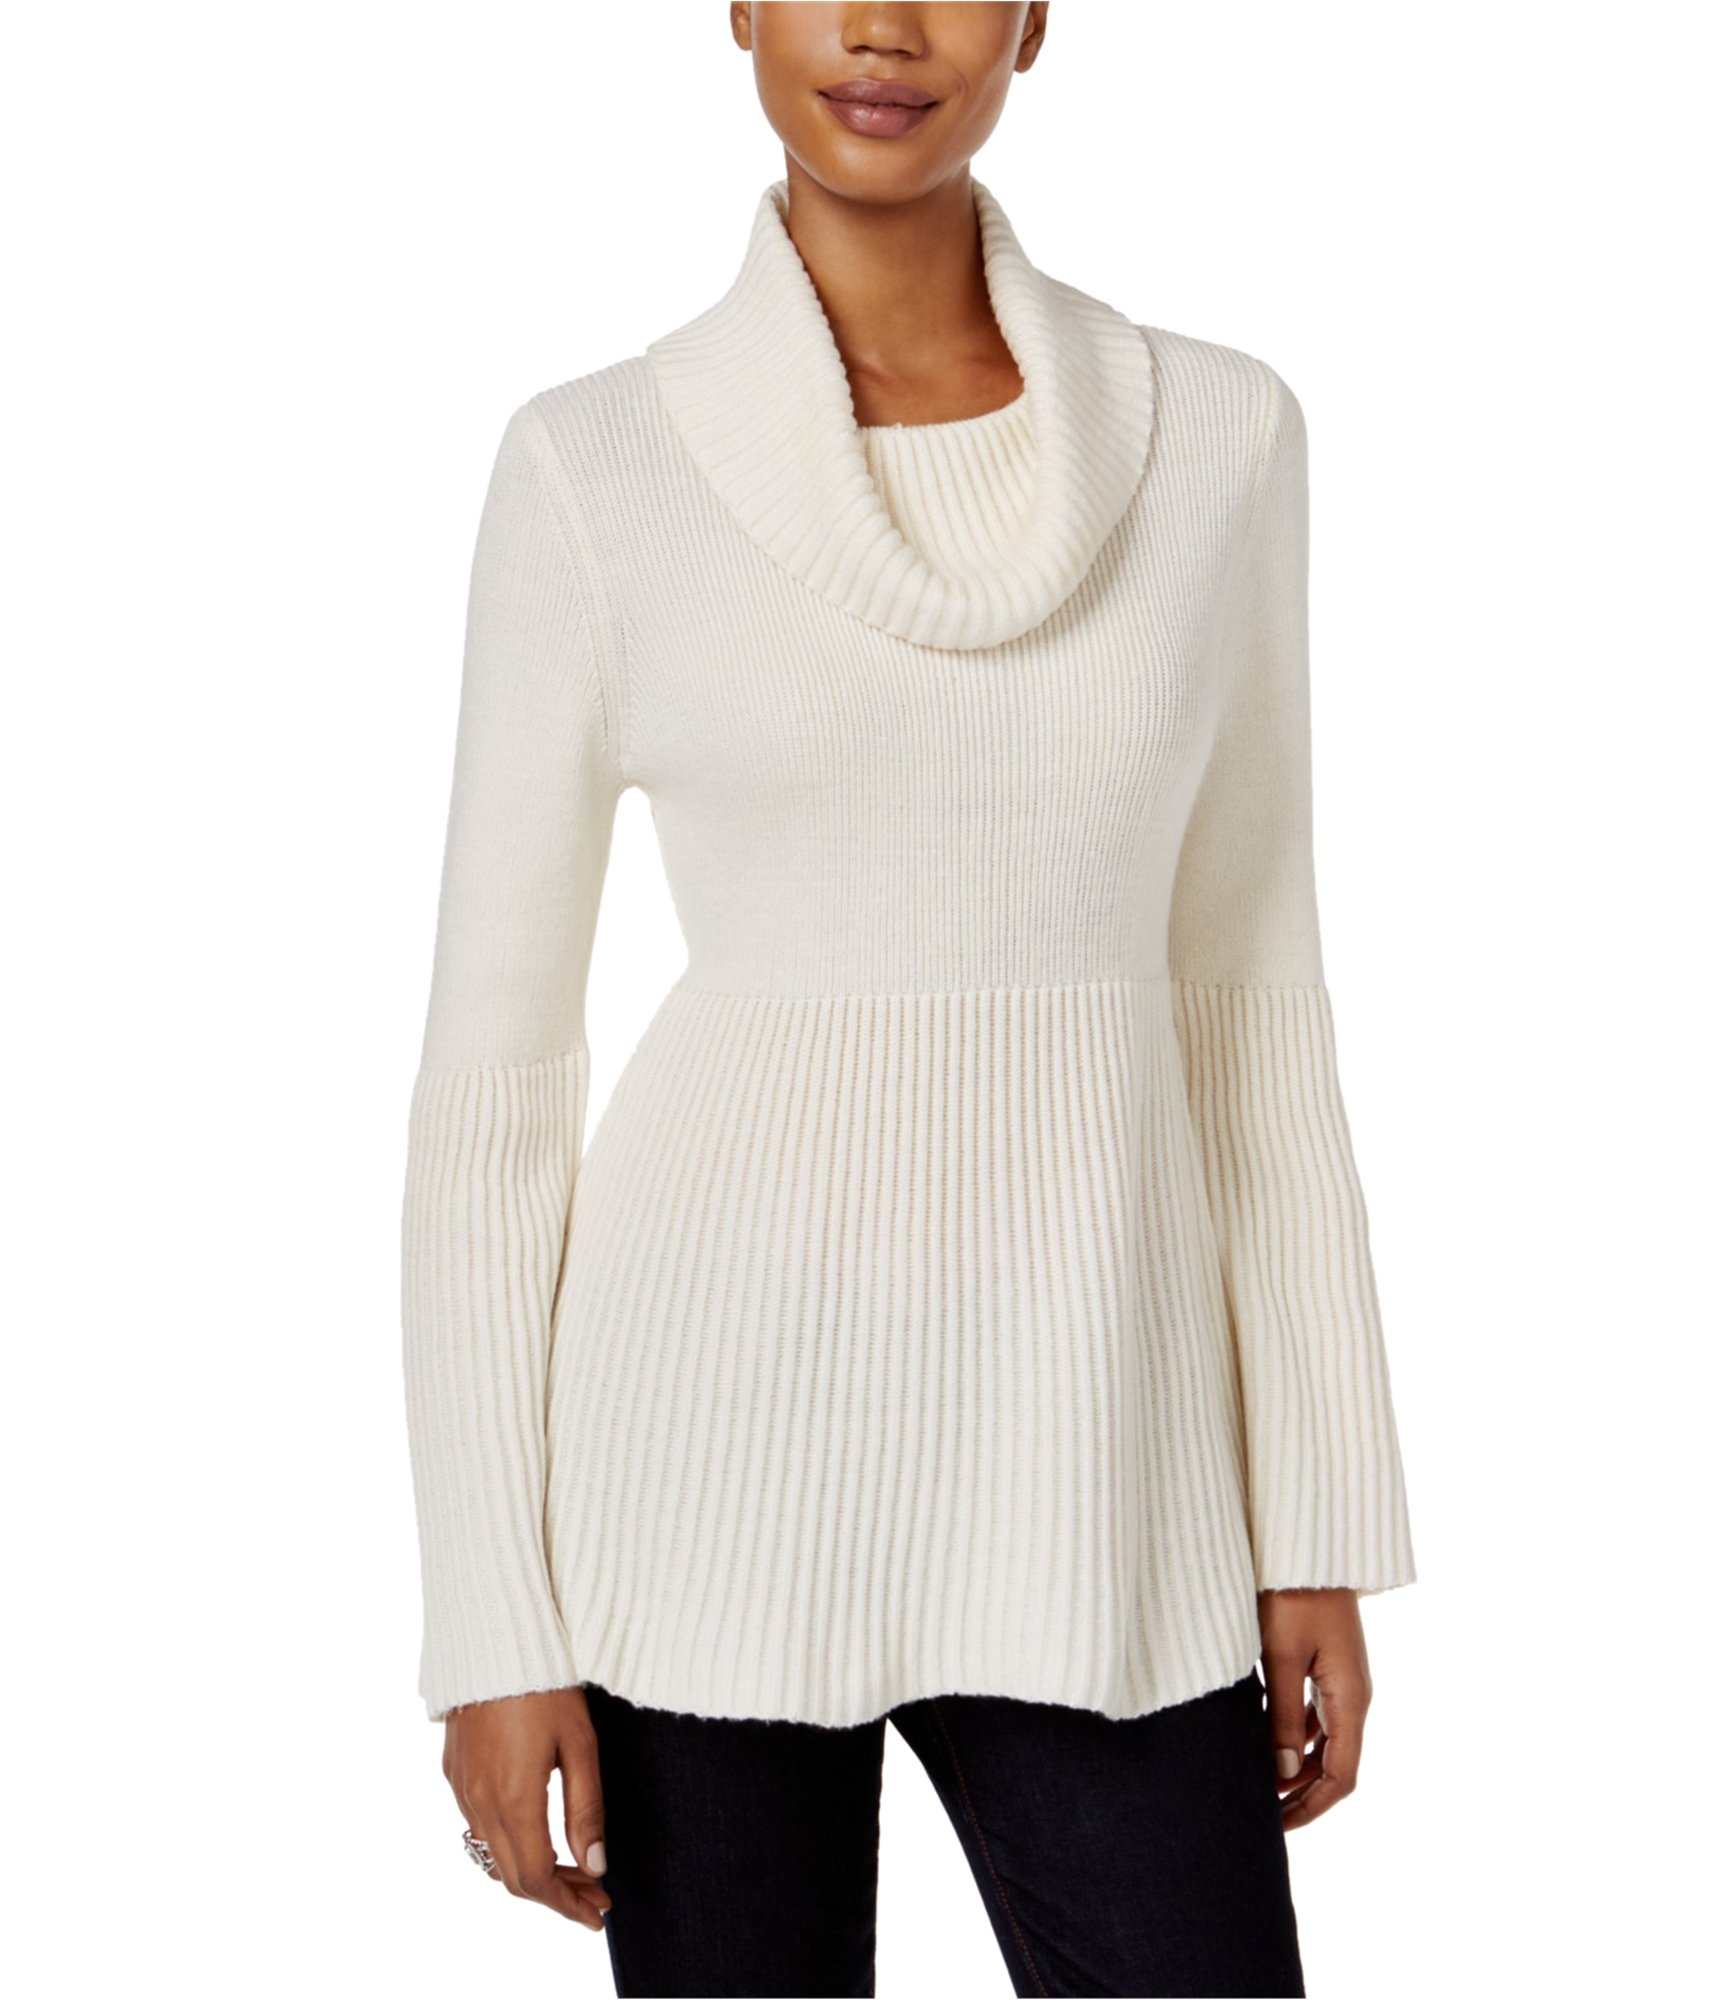 Style & Co. Womens Ribbed Pullover Sweater White PXS - Petite